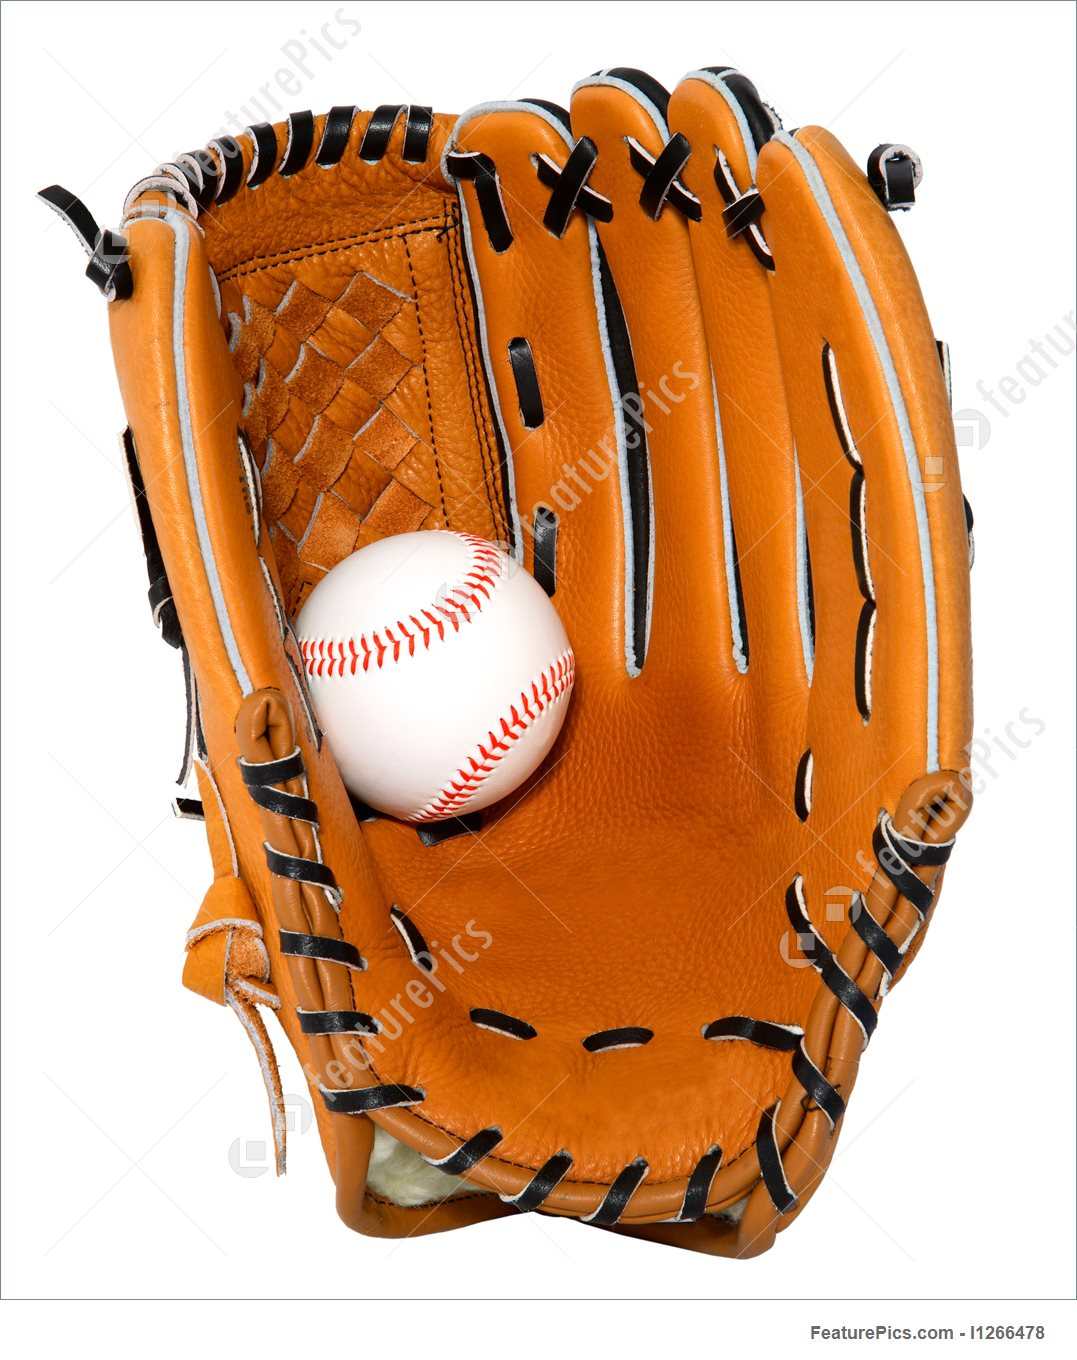 Baseball Mitt And Ball Free Download Clip Art.